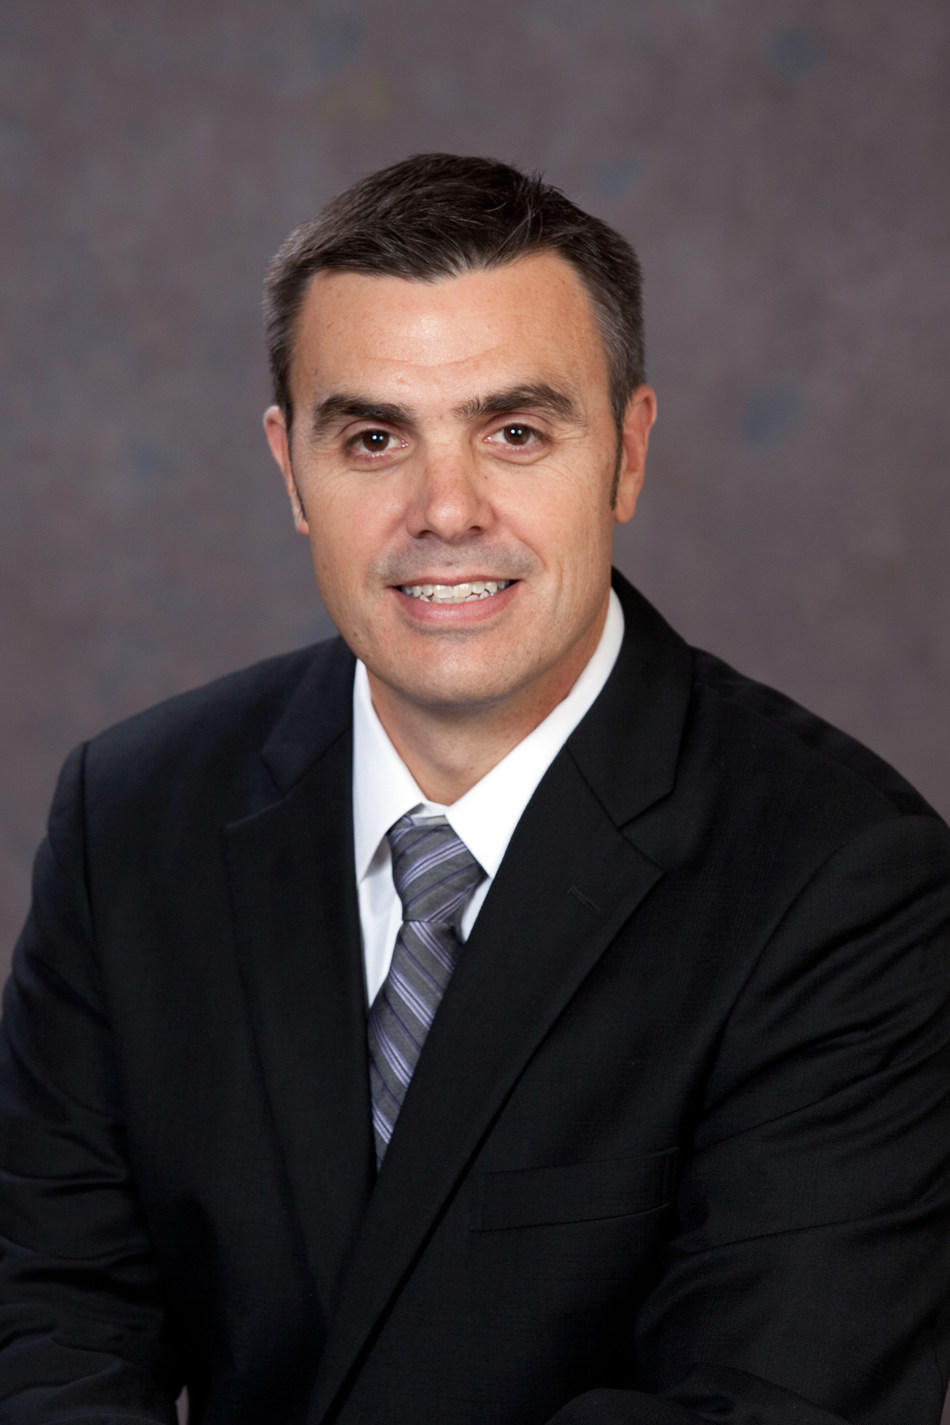 Bradley Jeanneret, DBIA, has been promoted to Executive Vice President at Hensel Phelps. (Photo credit: Hensel Phelps)